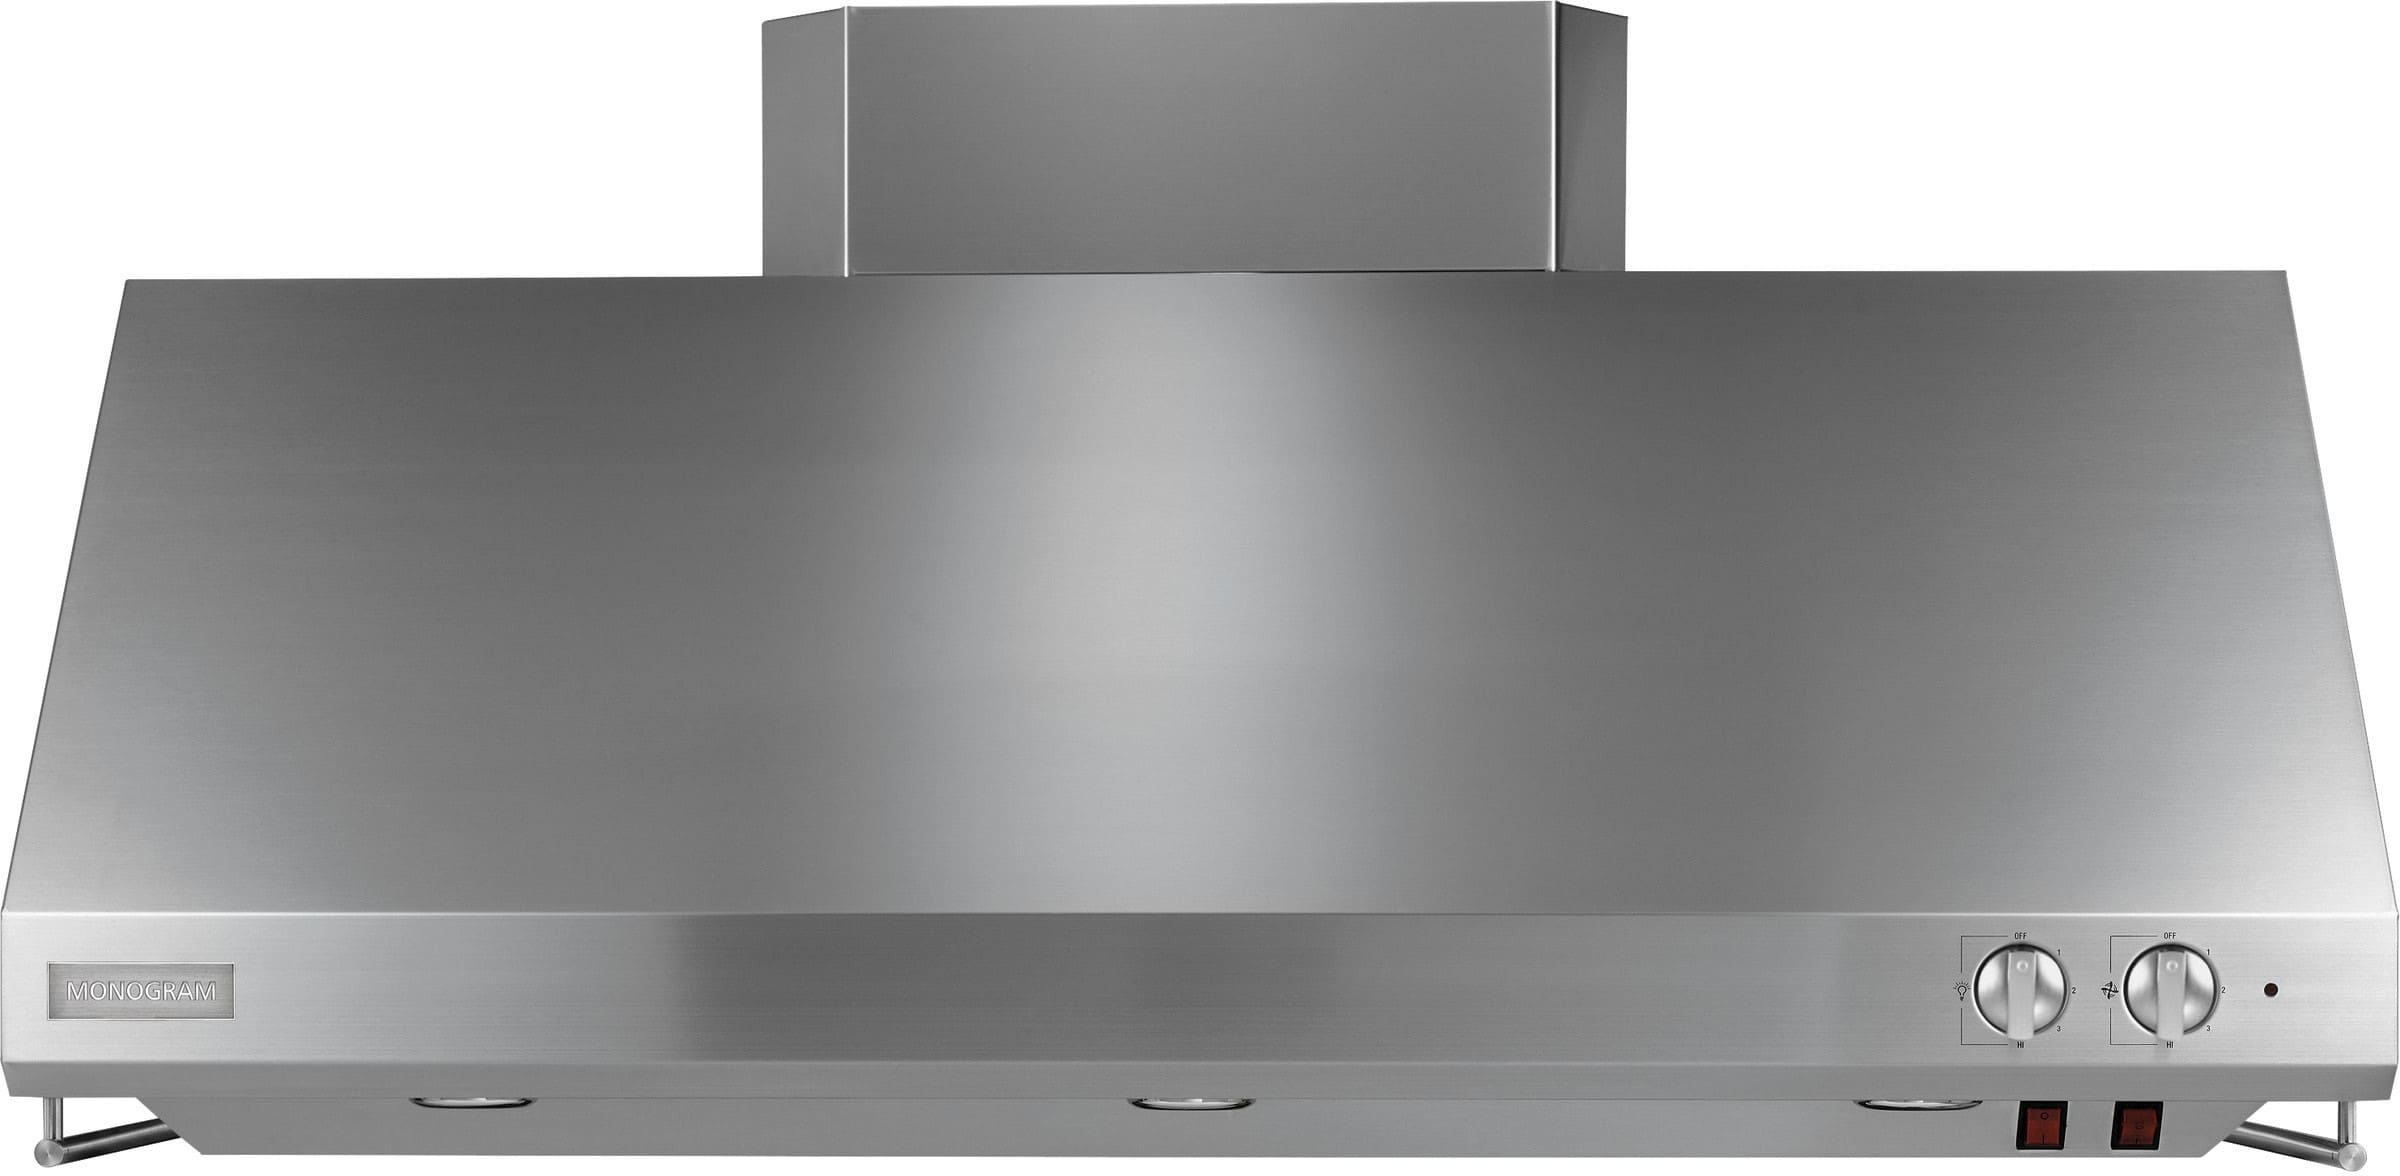 monogram zv48ssjss 48 inch professional wall mount hood with 940 cfm vertical exhaust  4